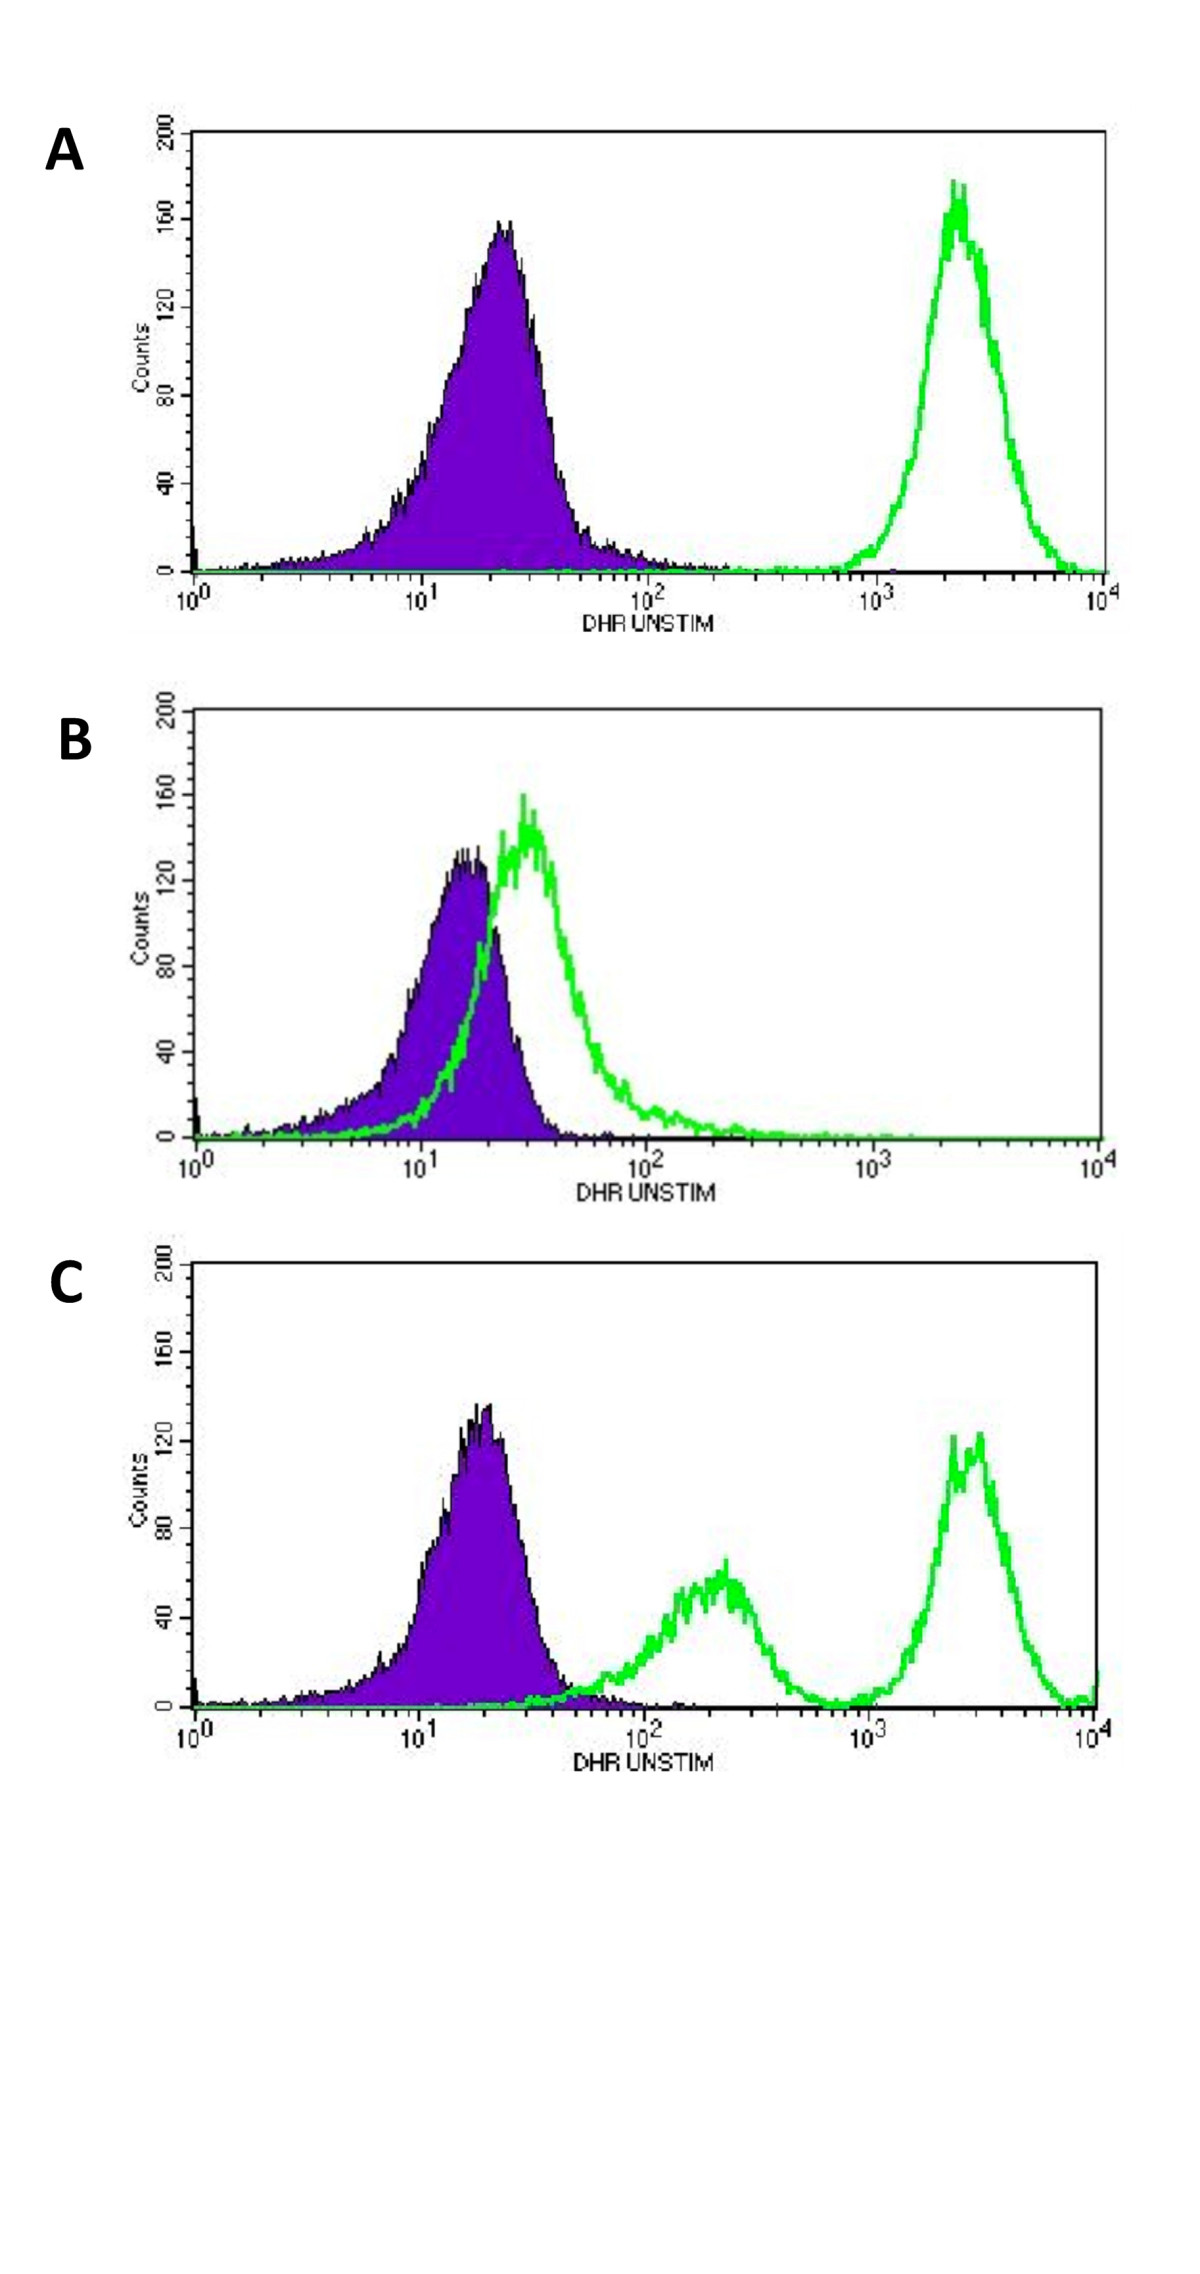 http://static-content.springer.com/image/art%3A10.1186%2F1472-6890-7-1/MediaObjects/12907_2006_Article_40_Fig1_HTML.jpg